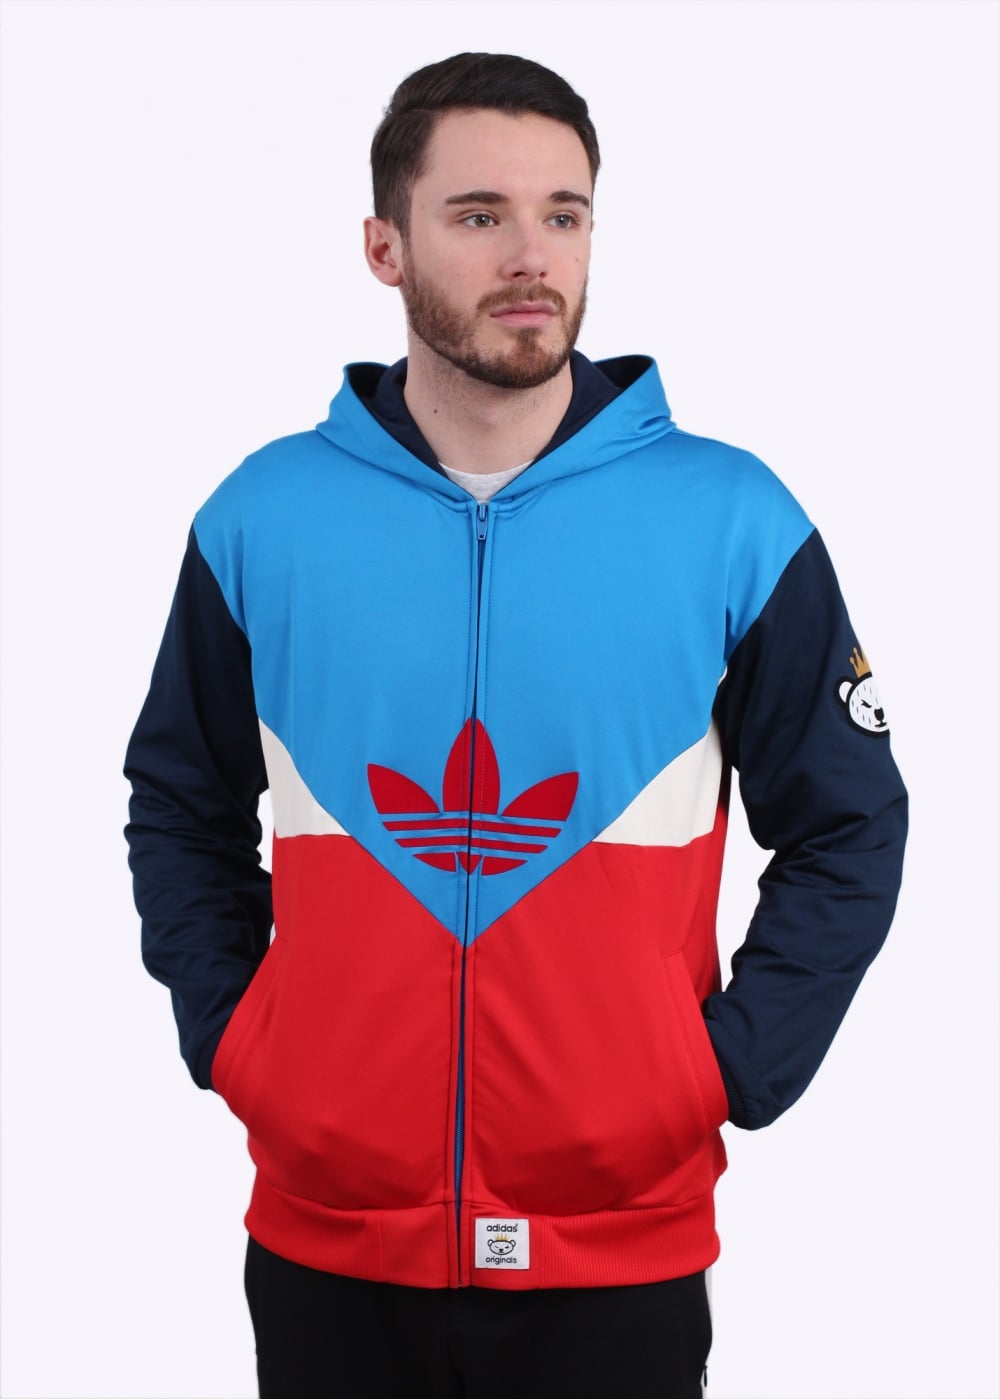 newest collection e6868 9d78d adidas Originals Apparel x Nigo Colorado FZ Hoody - Red / Blue